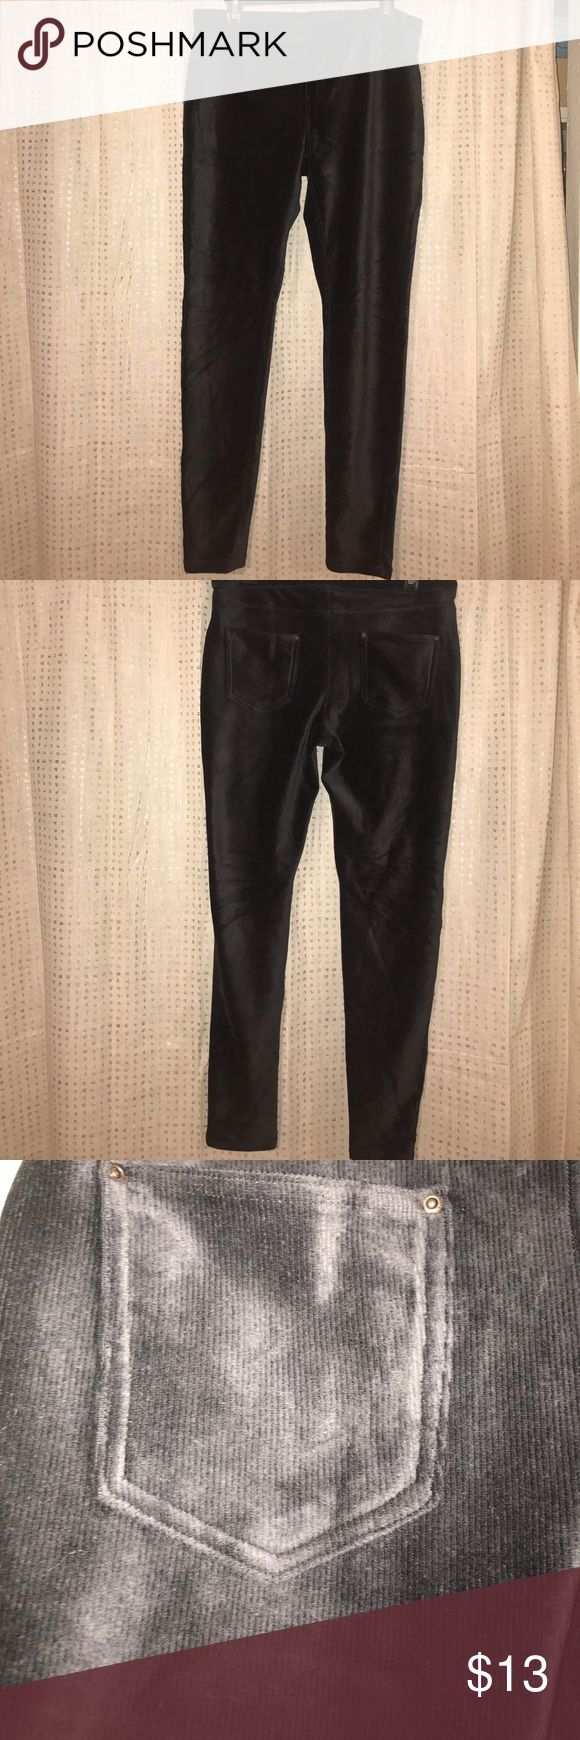 Hue Corduroy Leggings Dark grey corduroy leggings. Two bank pockets. HUE Pants Leggings